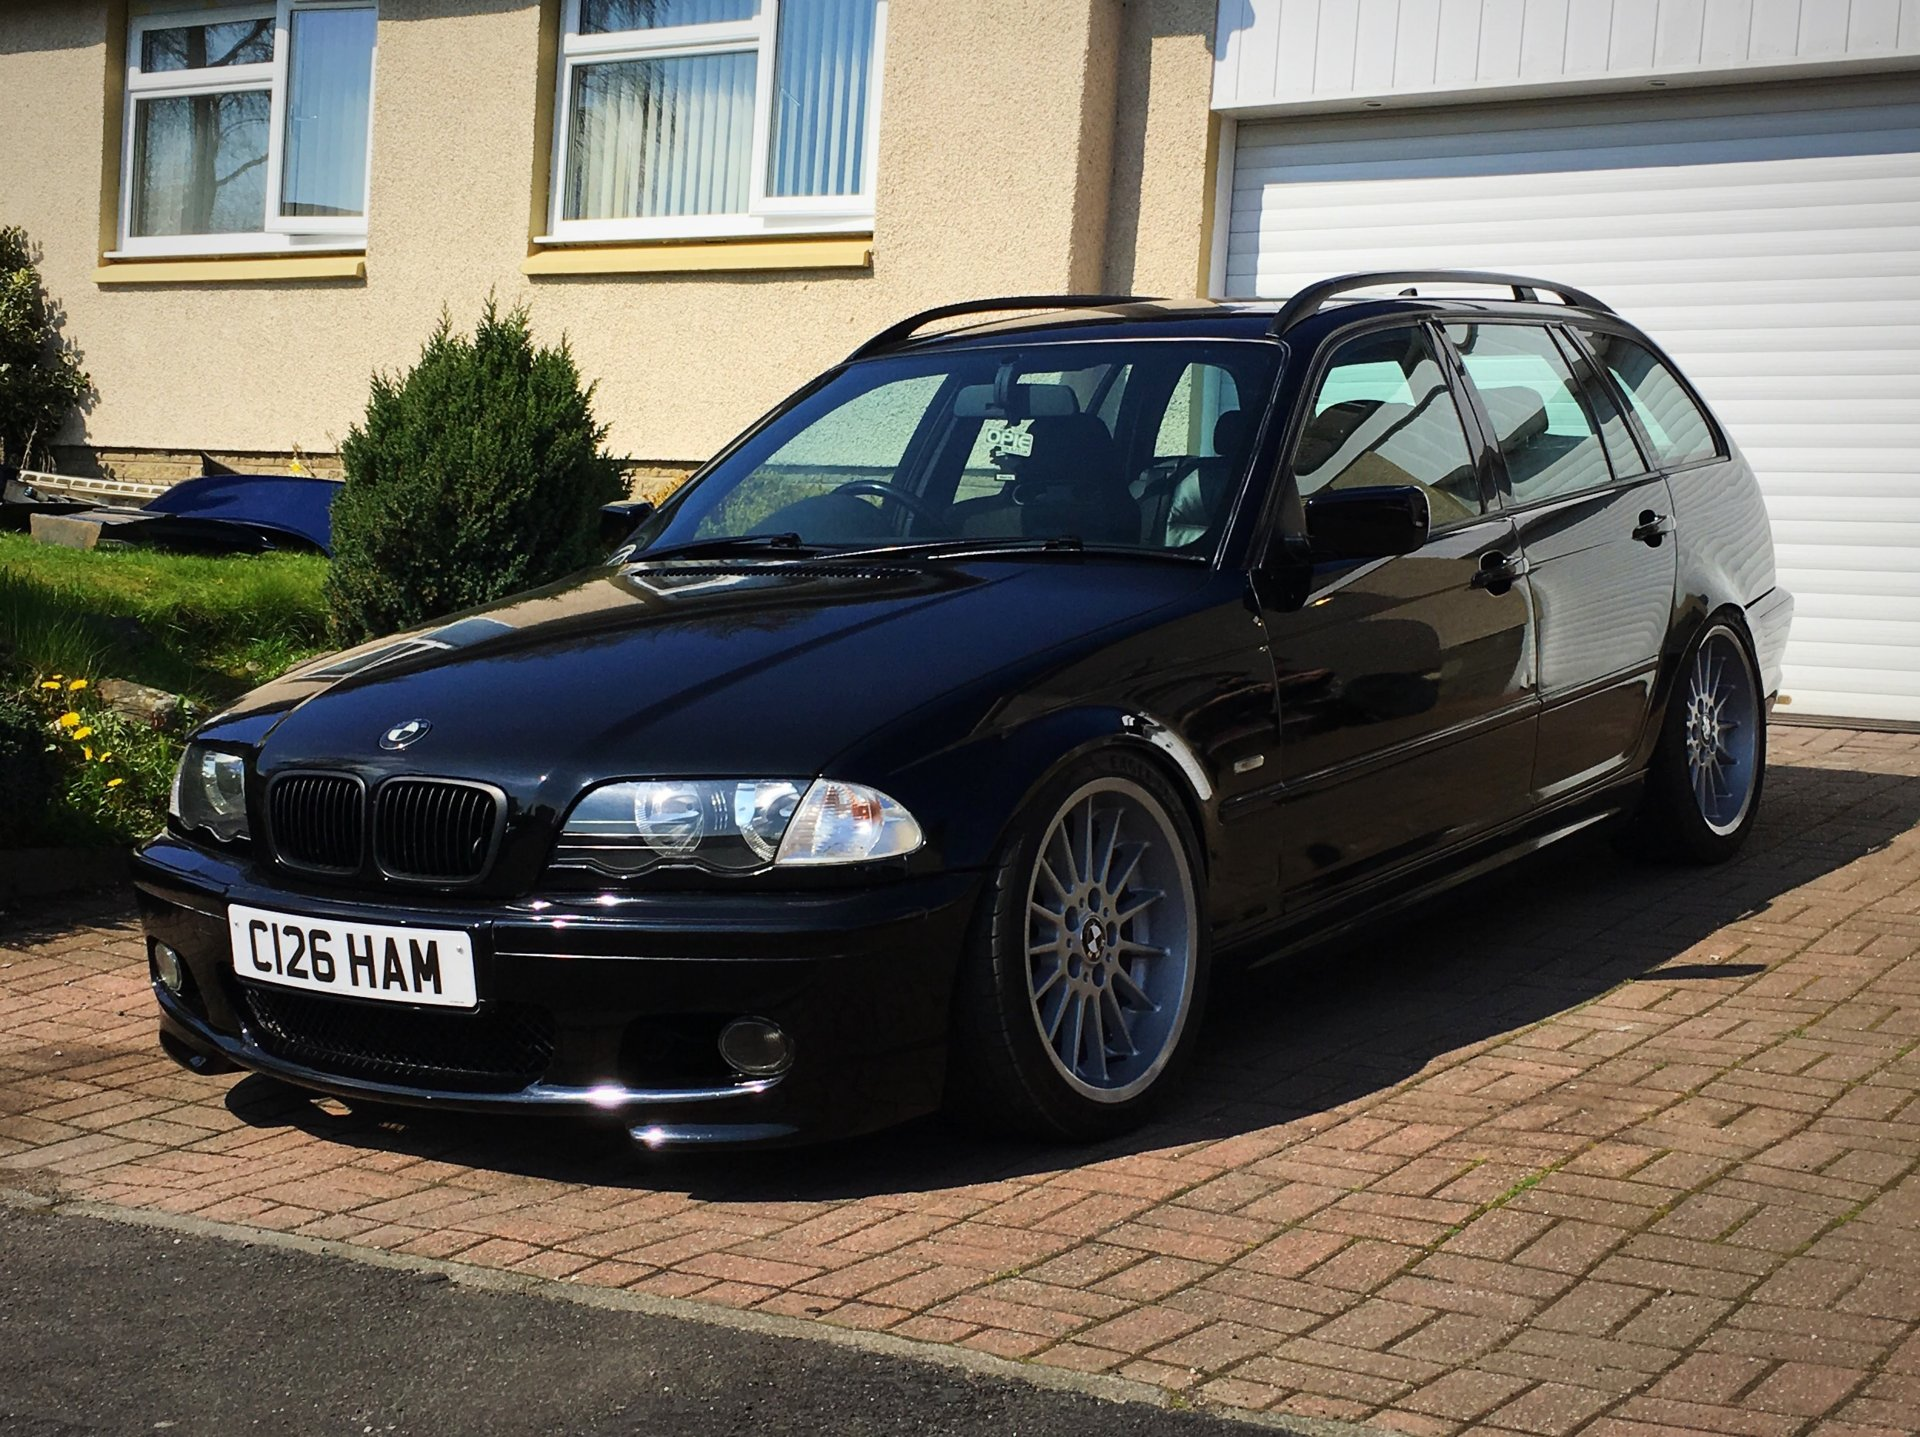 bmw e46 m3 s54 3 2 sport touring estate sleeper. Black Bedroom Furniture Sets. Home Design Ideas